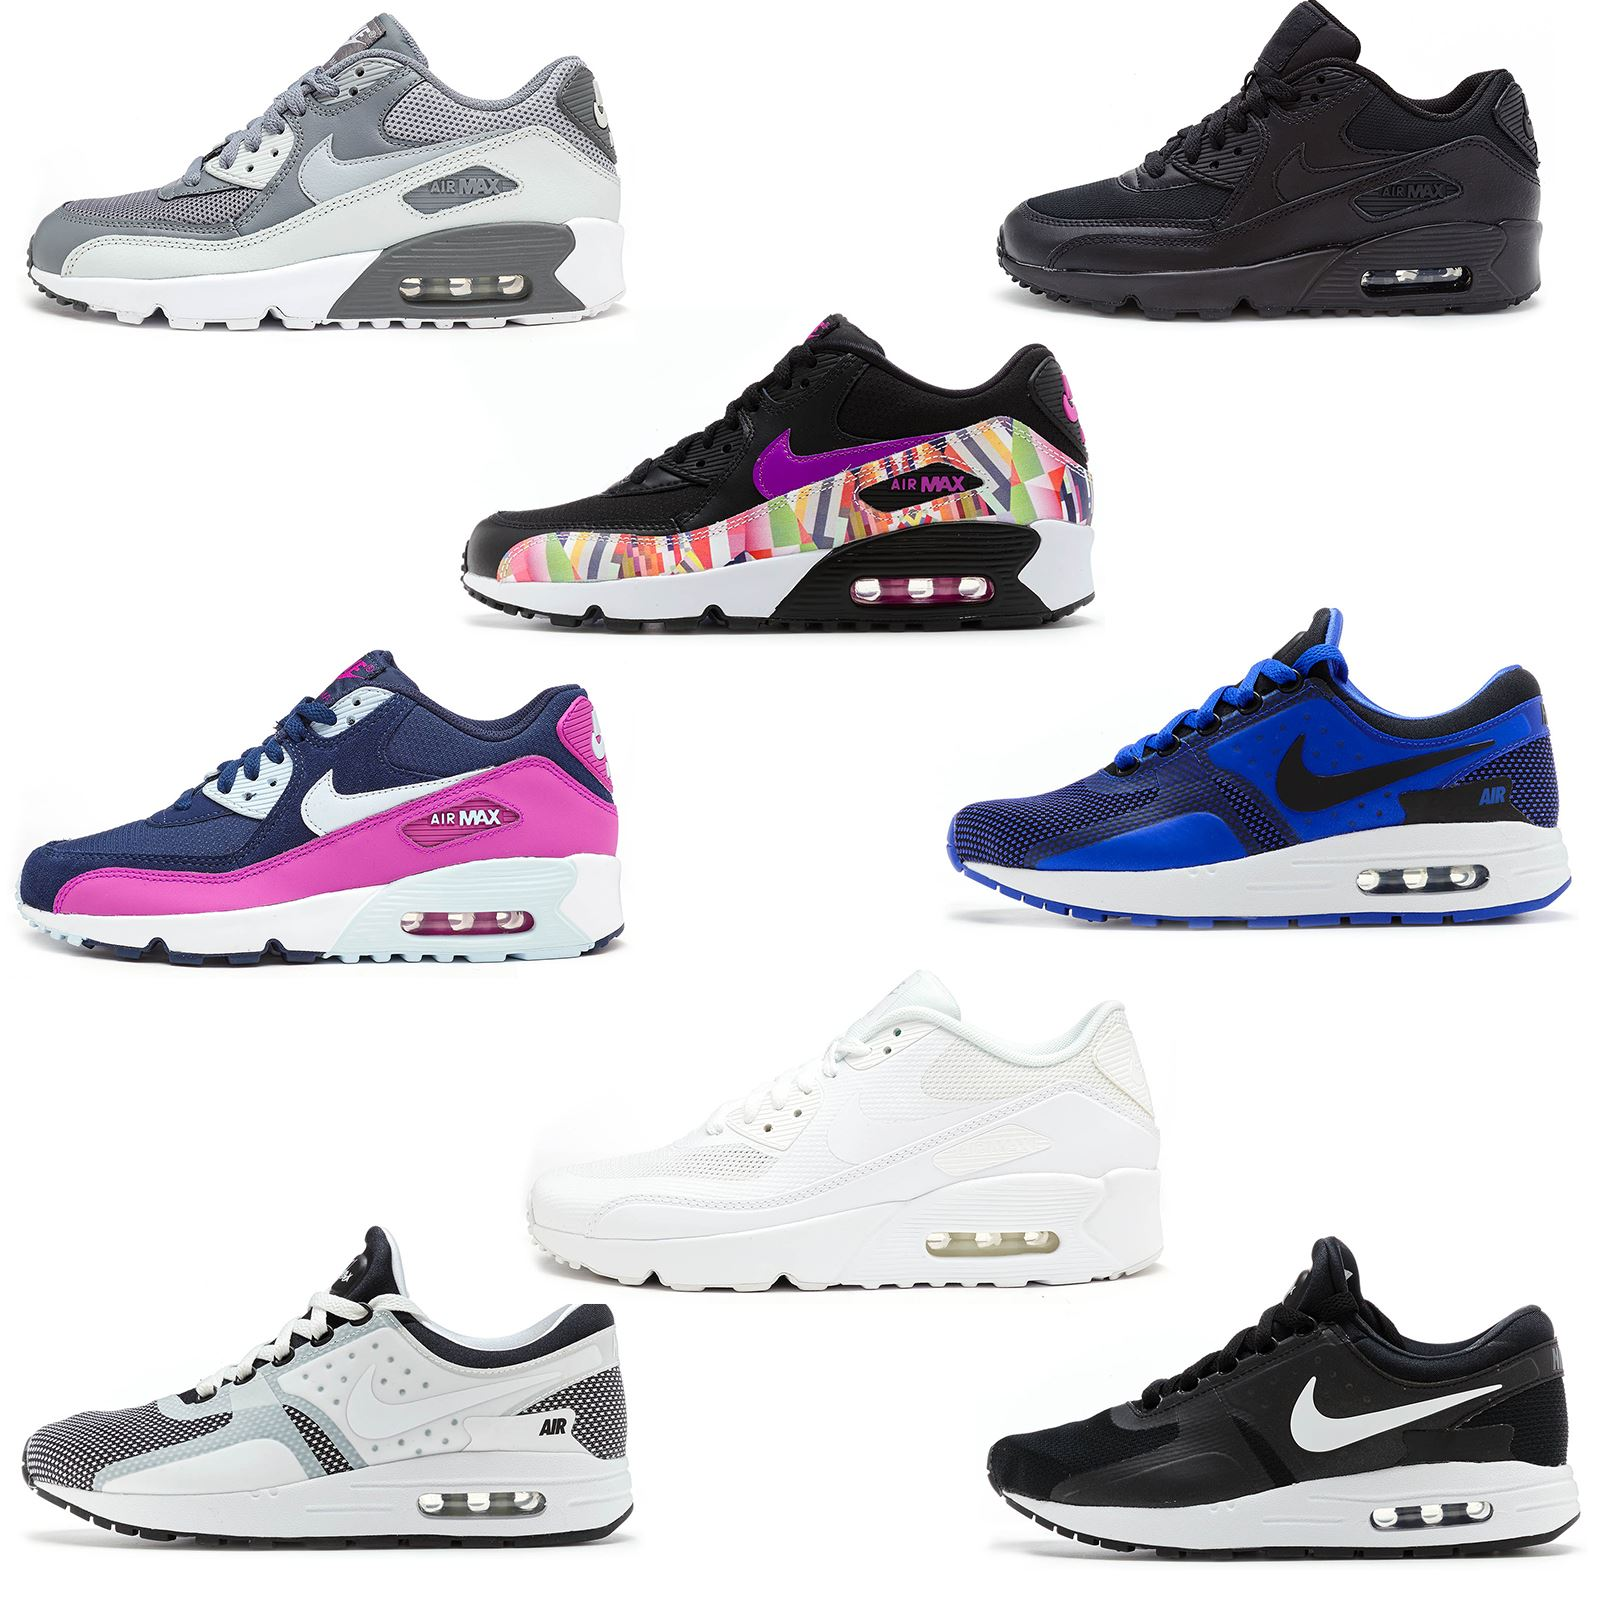 c22e8e8218 Details about Nike Air Max 90 & Zero GS Fashion Leather Glow Mesh Trainers  All Sizes